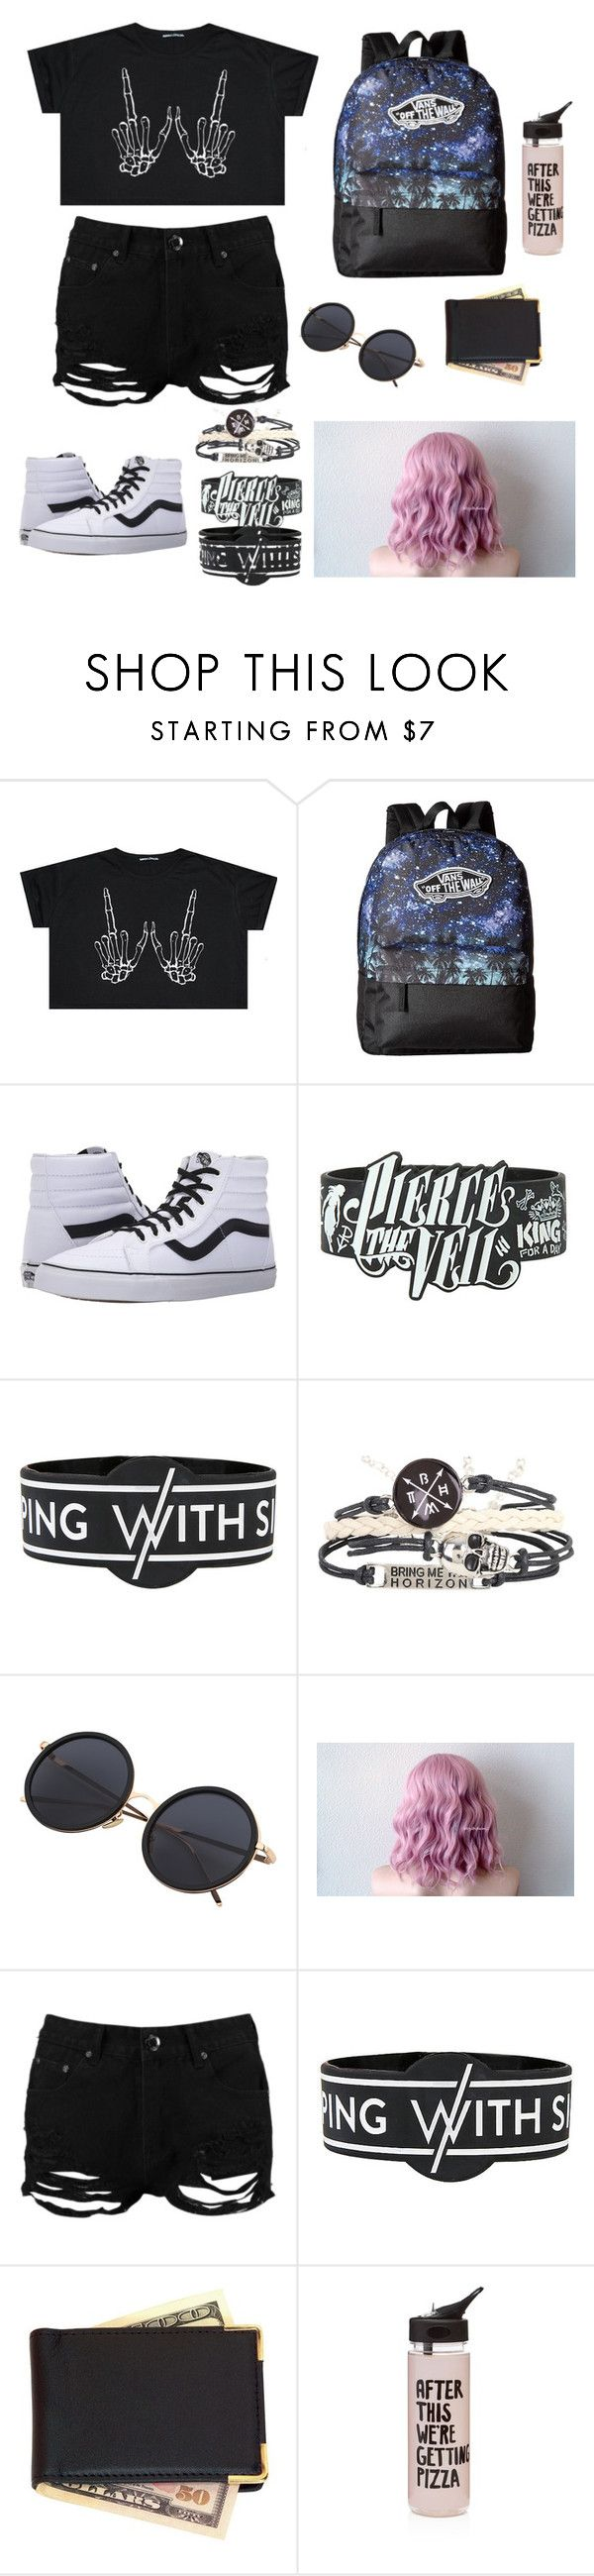 """Warped Tour 2017"" by skellydun ❤ liked on Polyvore featuring Vans, Boohoo, Royce Leather and ban.do"